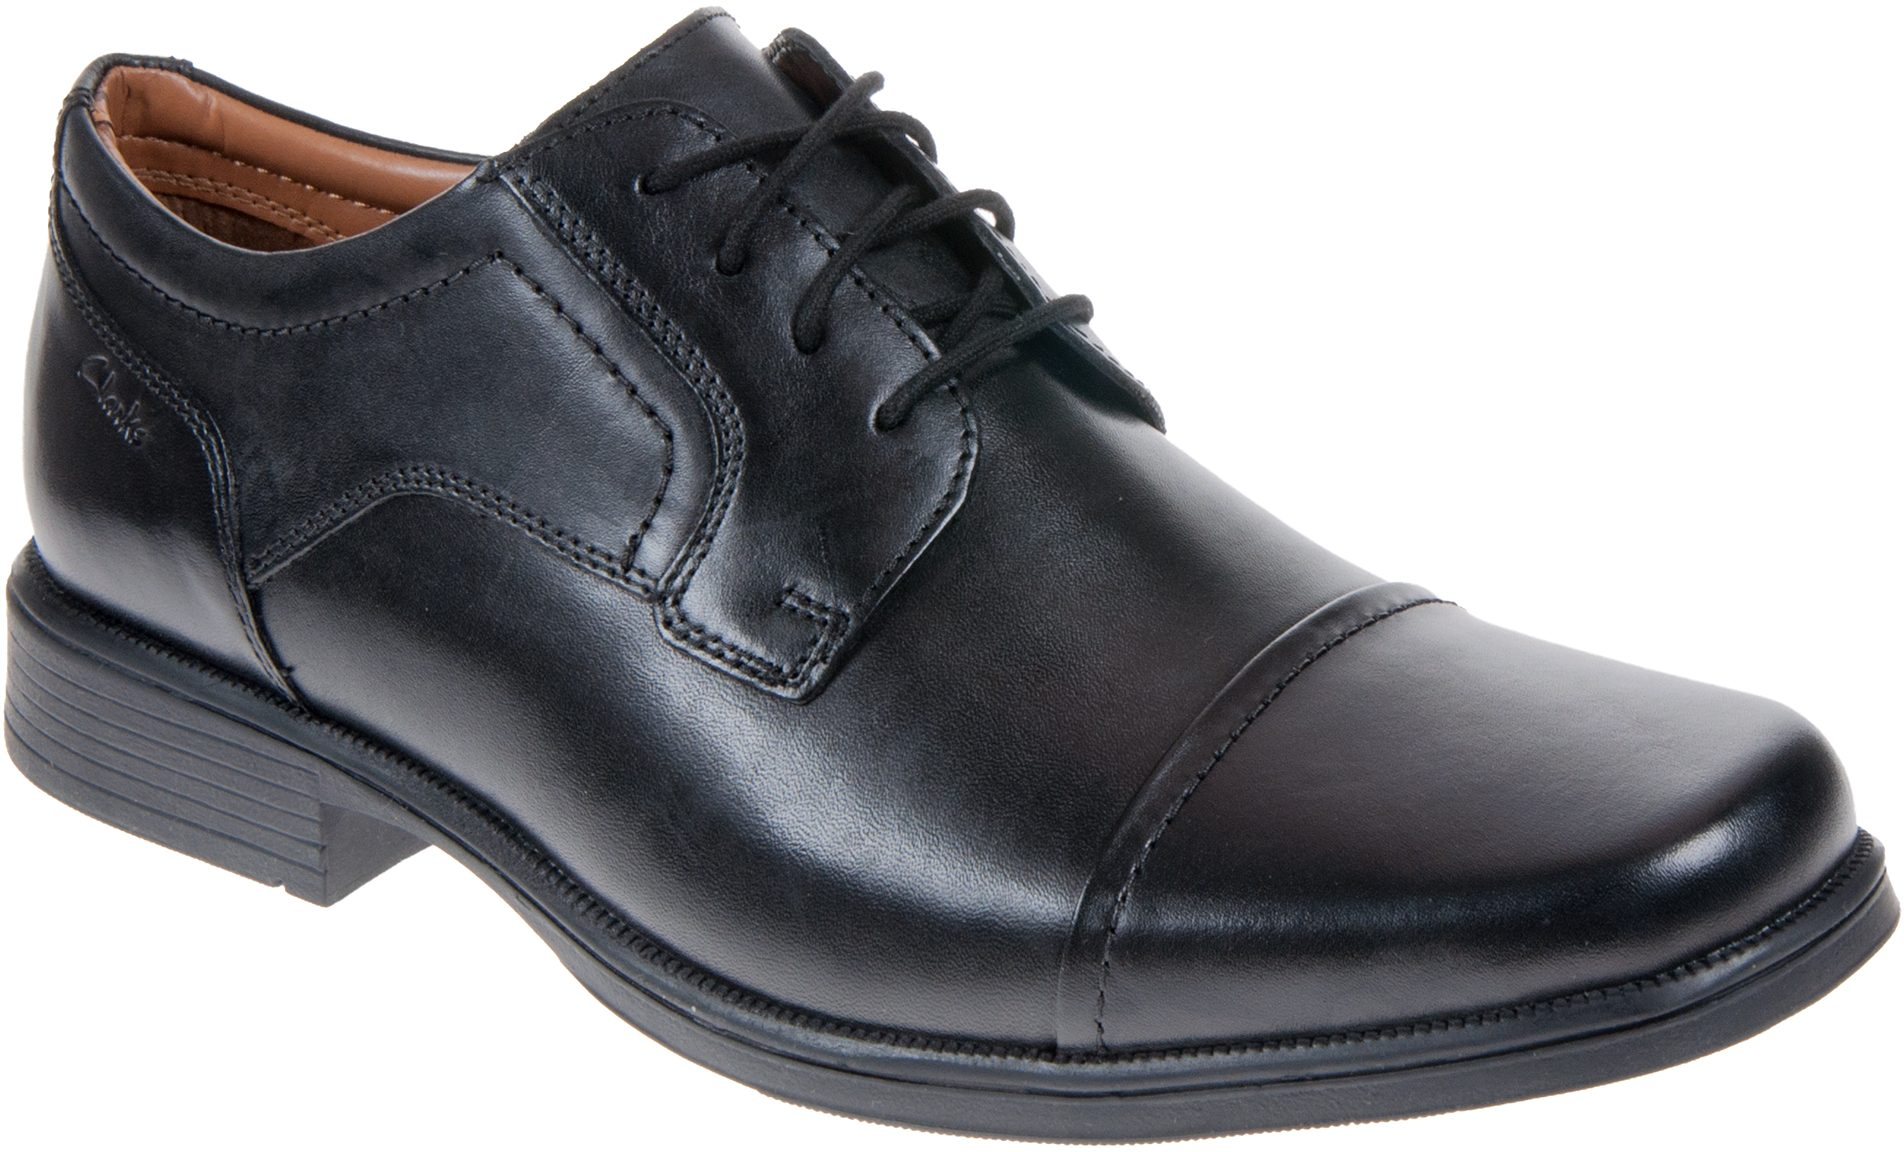 c24bb79b53 All Mens - Clarks - Clarks - Humphries Shoes